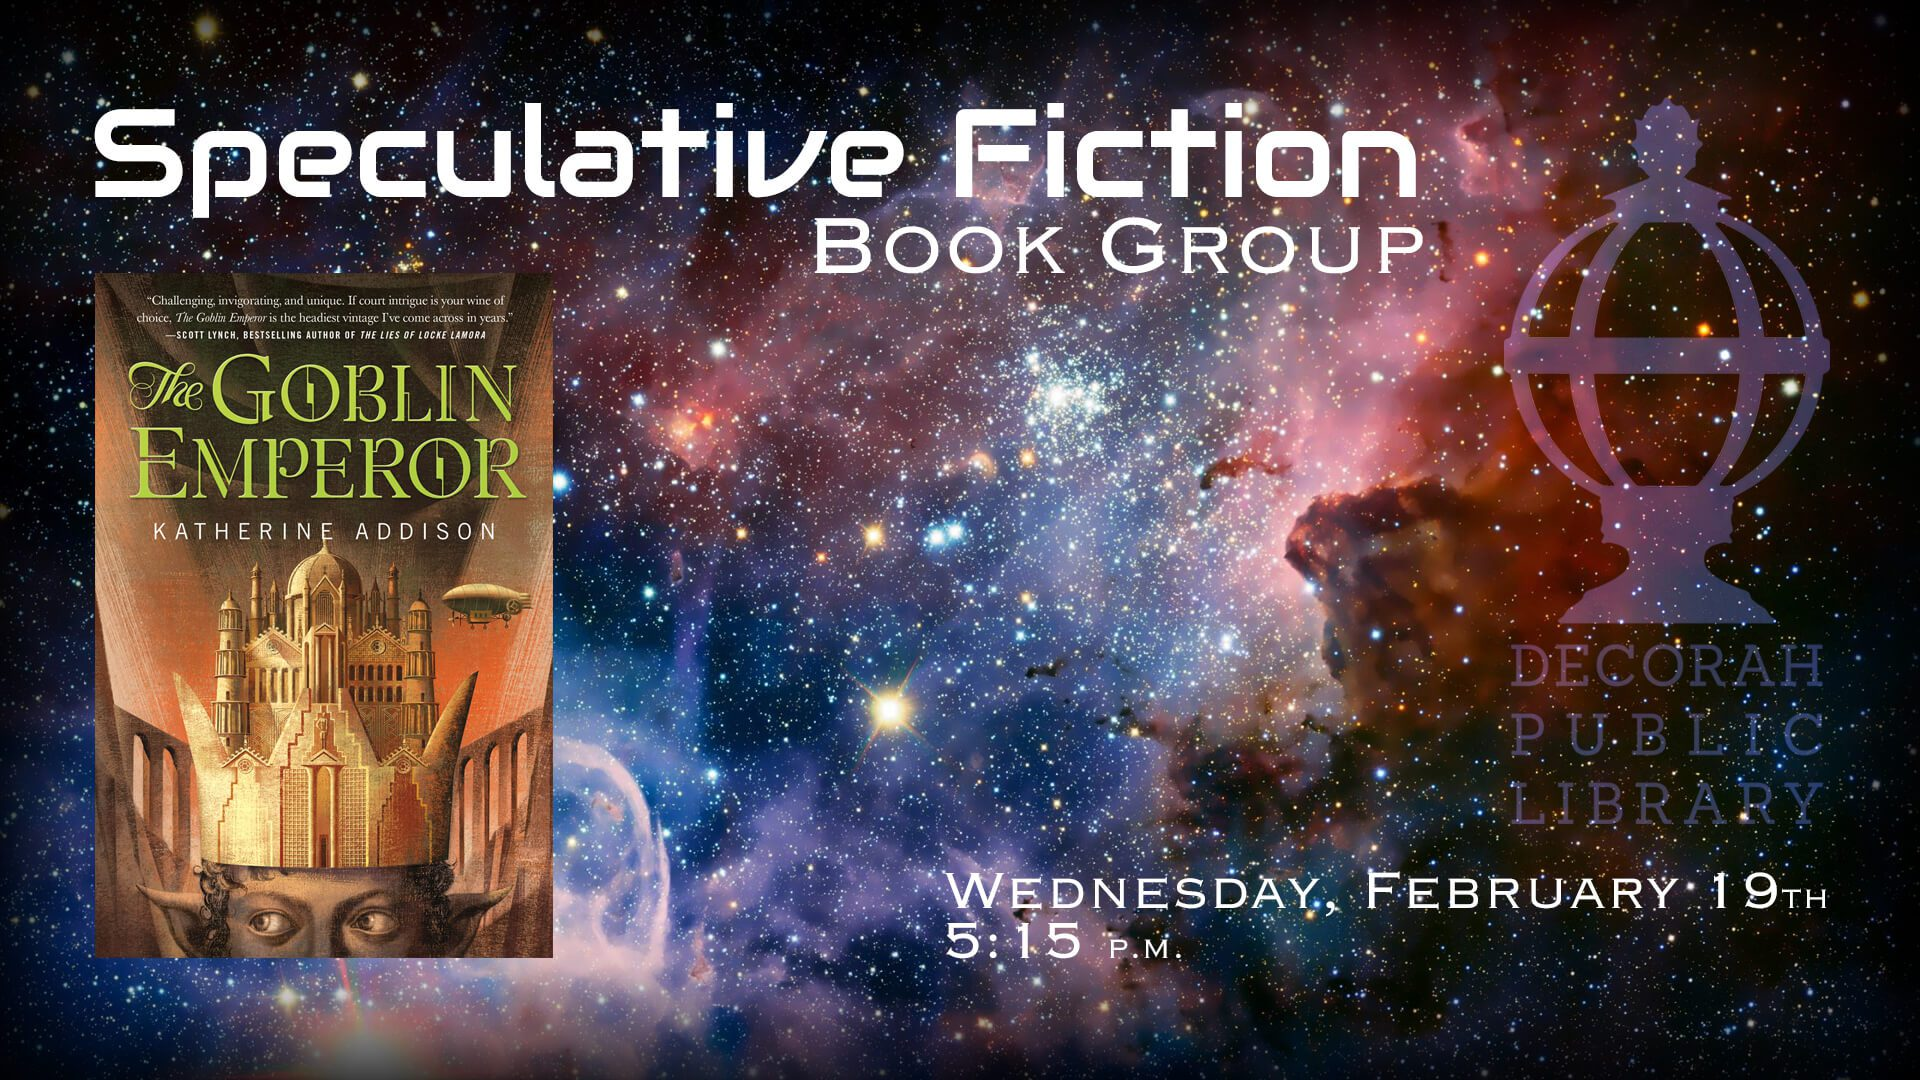 Speculative Fiction Book Group